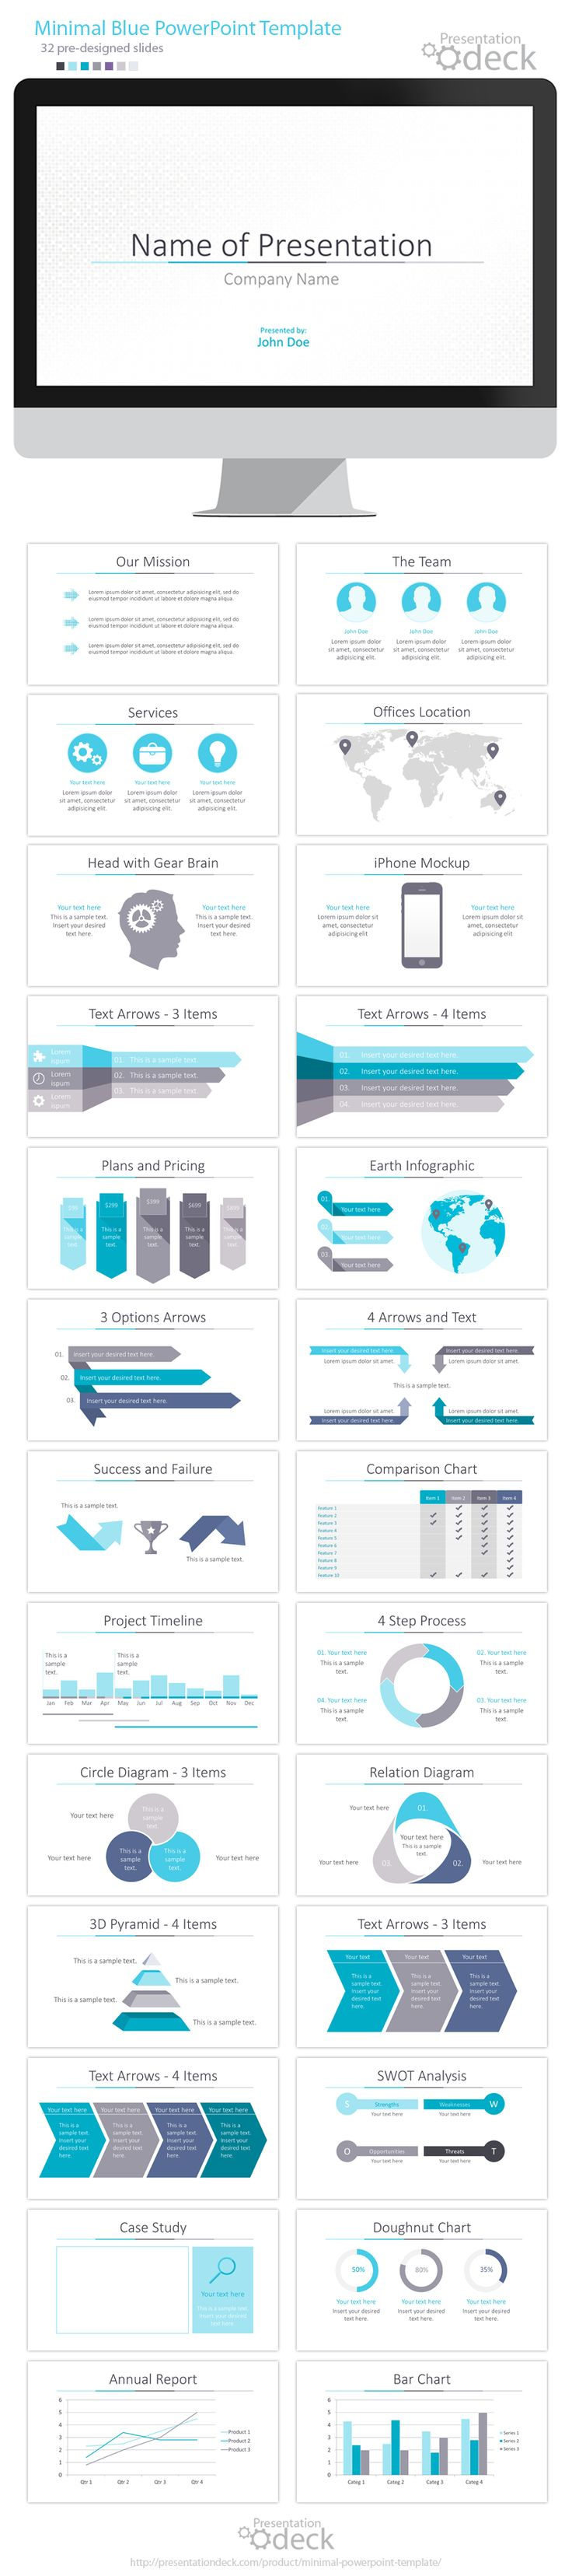 Minimal Blue PowerPoint Template with 32 pre-designed slides #presentation #powerpoint